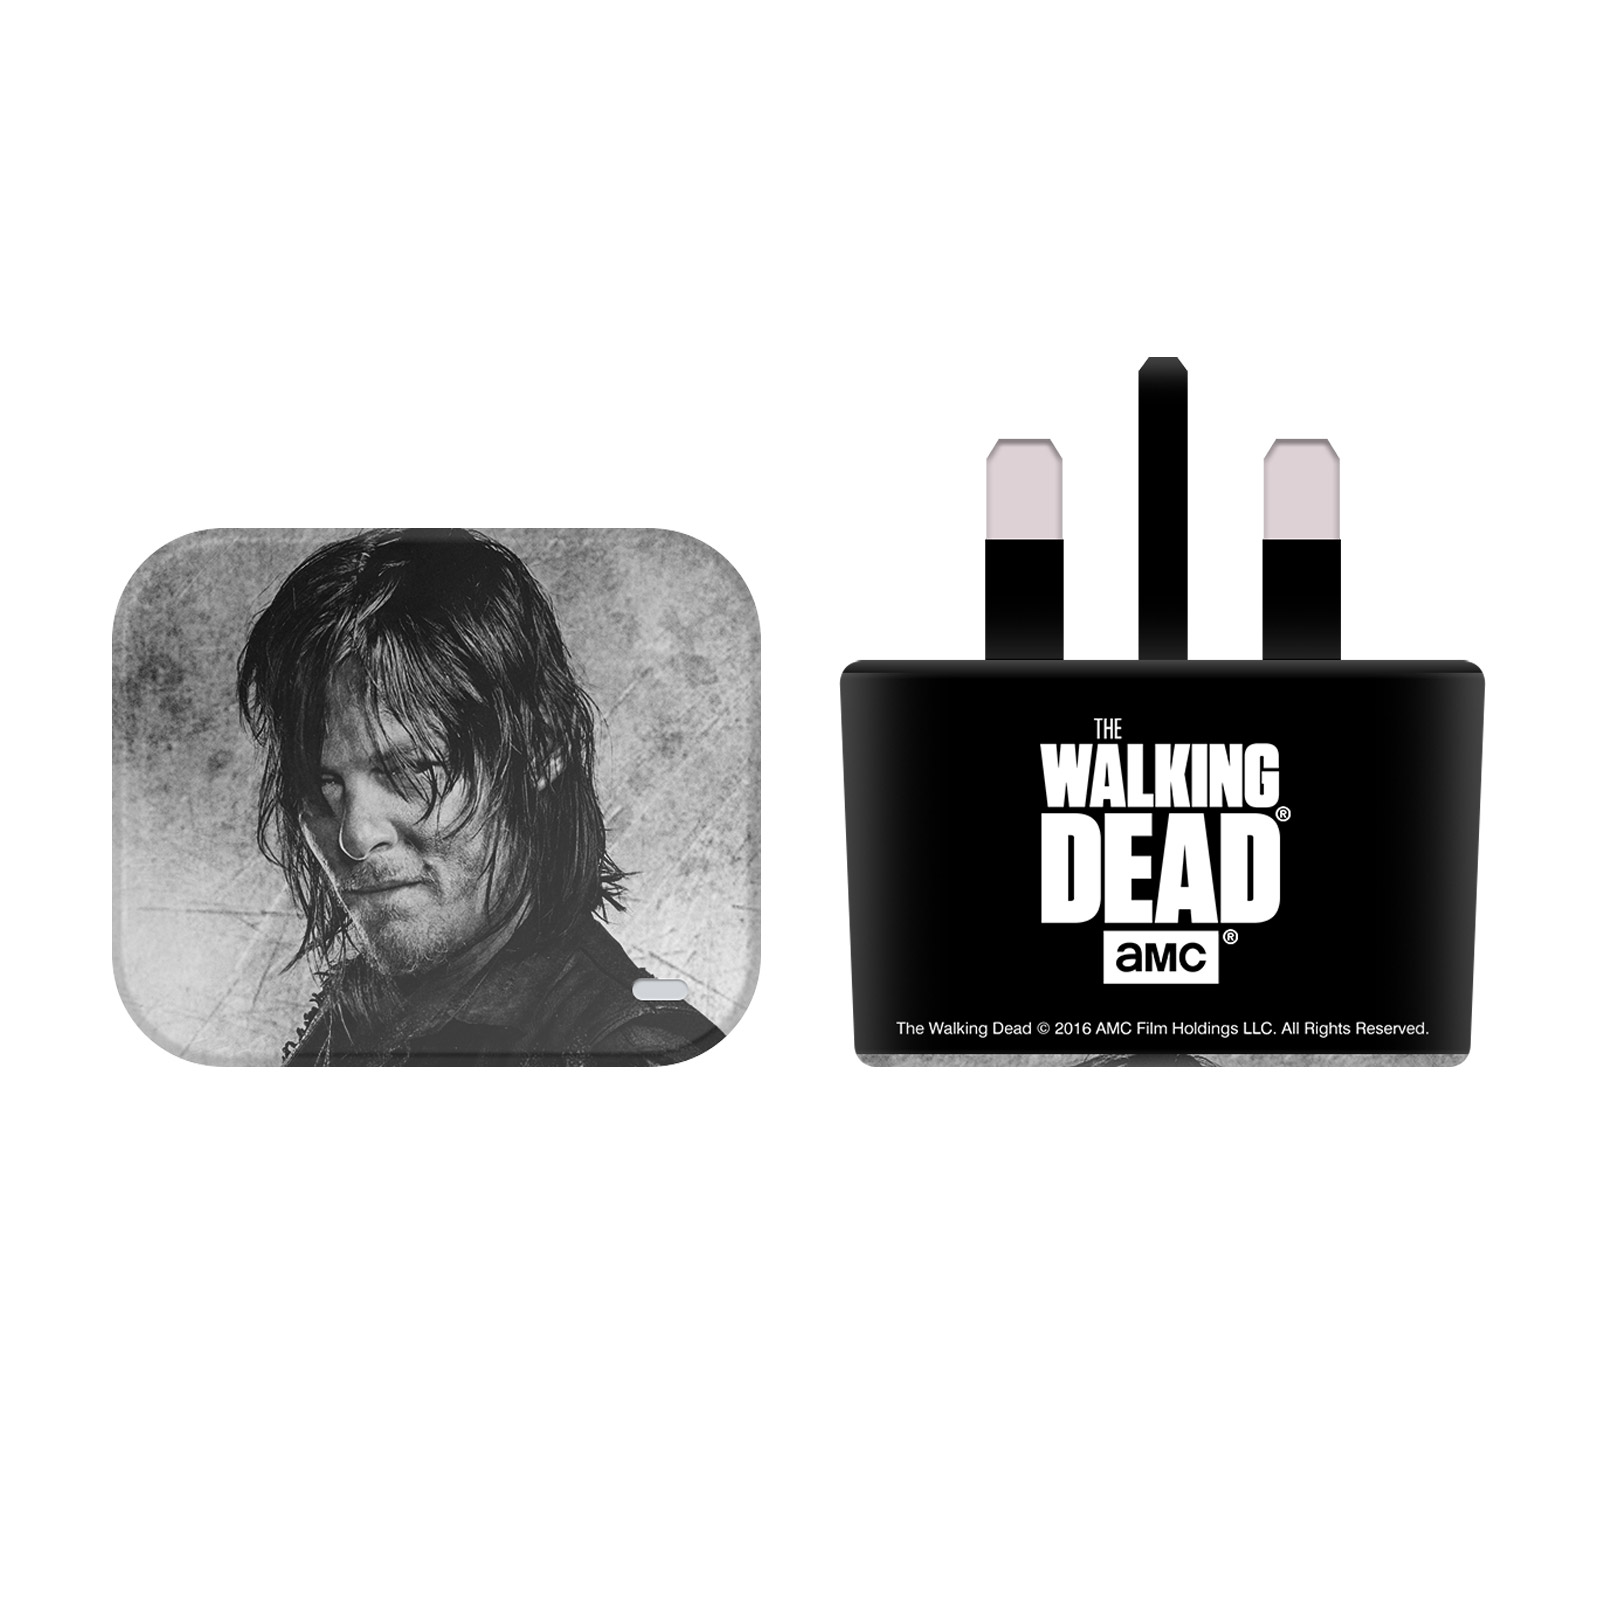 The Walking Dead Various Art Black Uk Charger Usb Cable